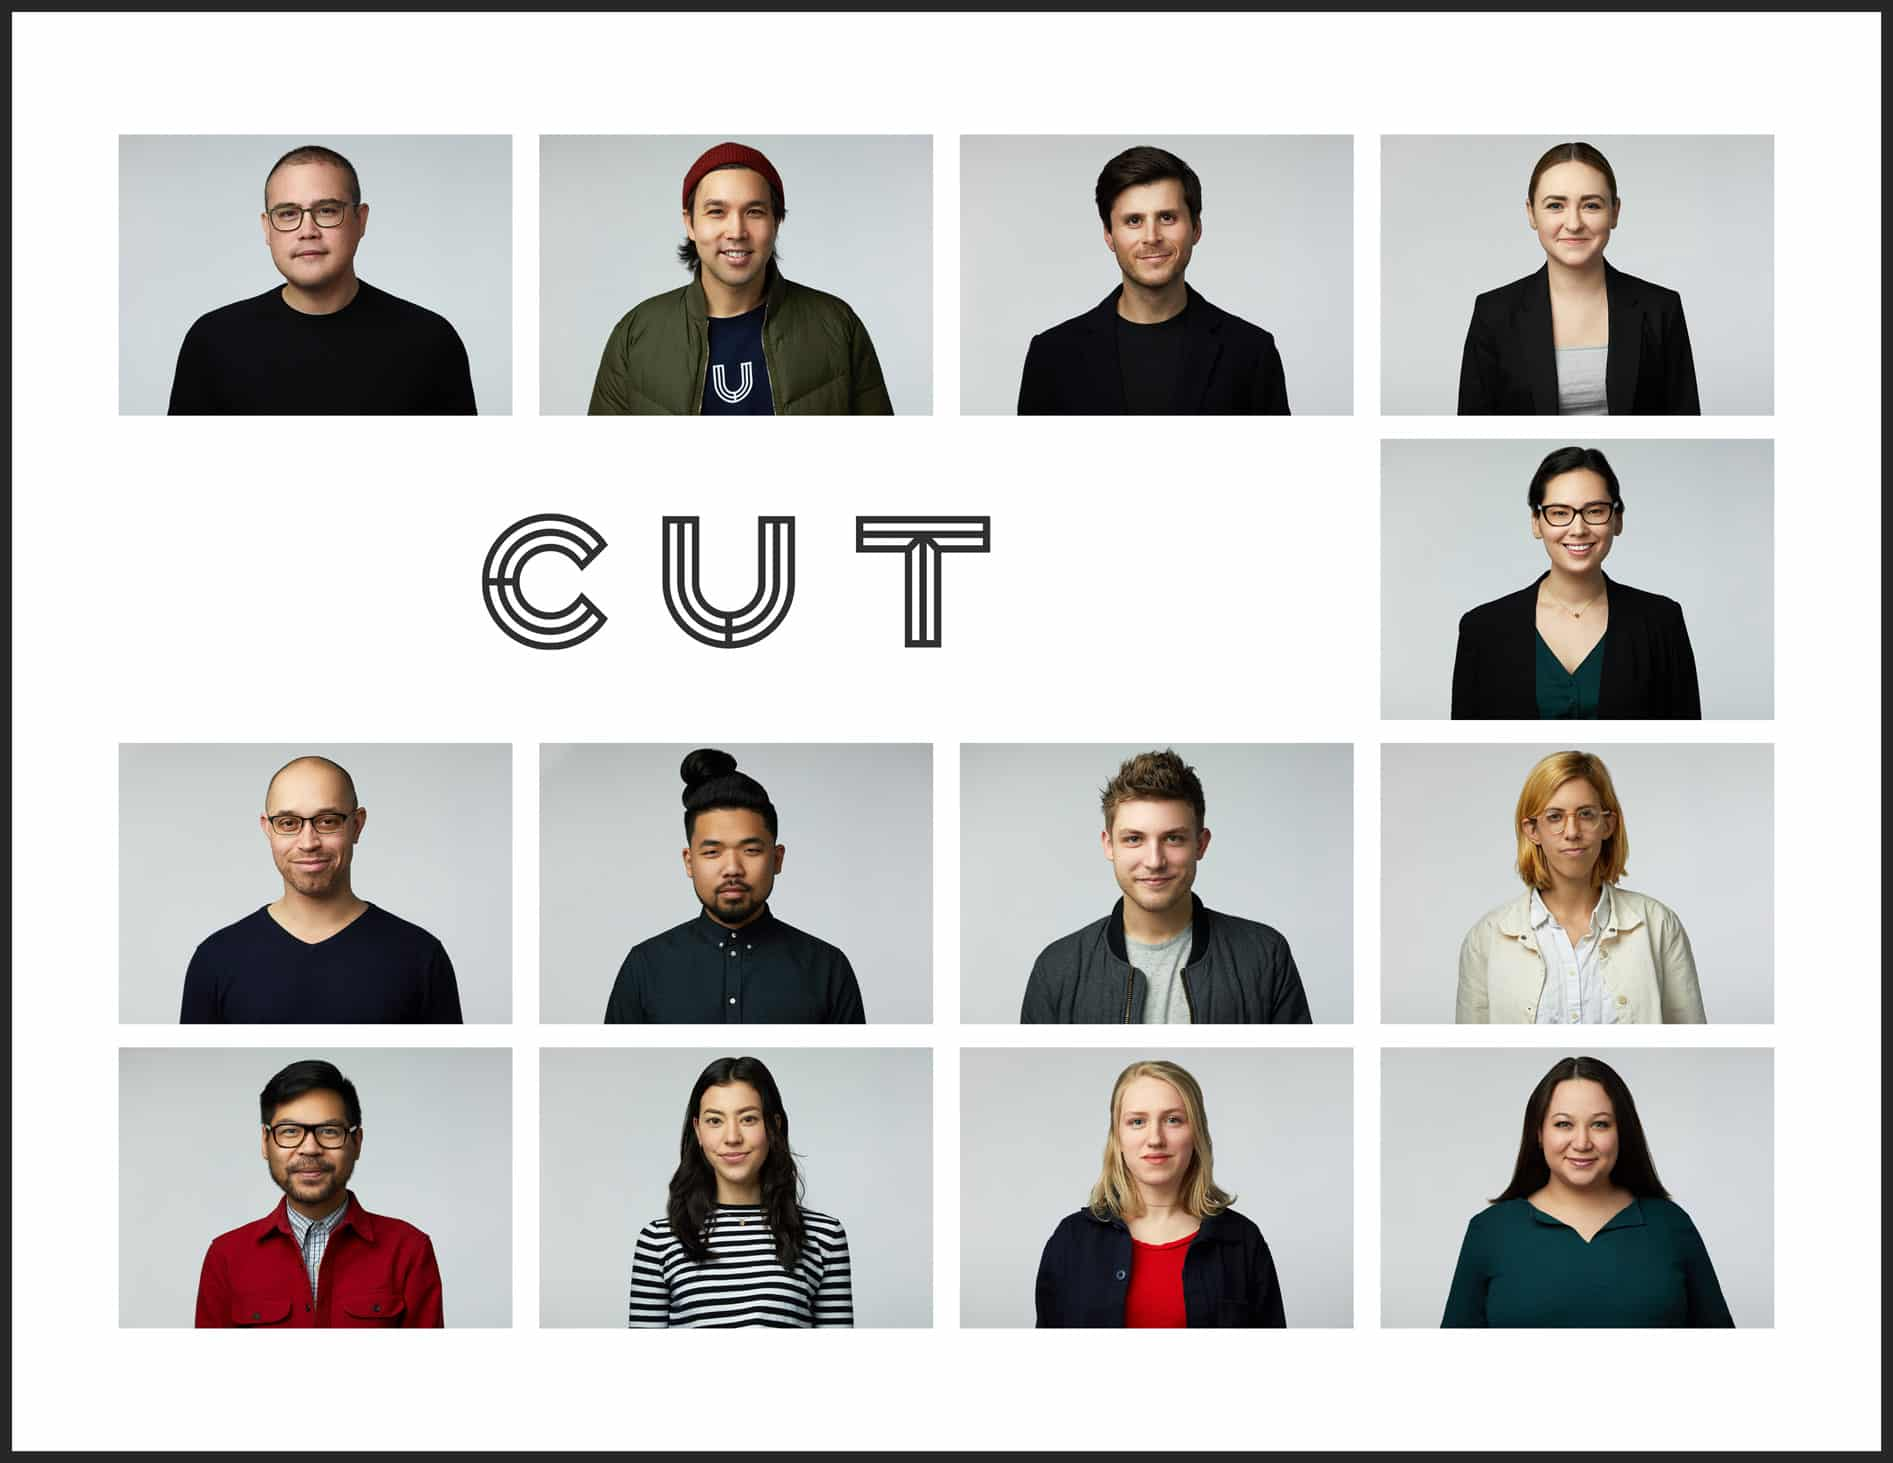 Cut.com Headshot Grid